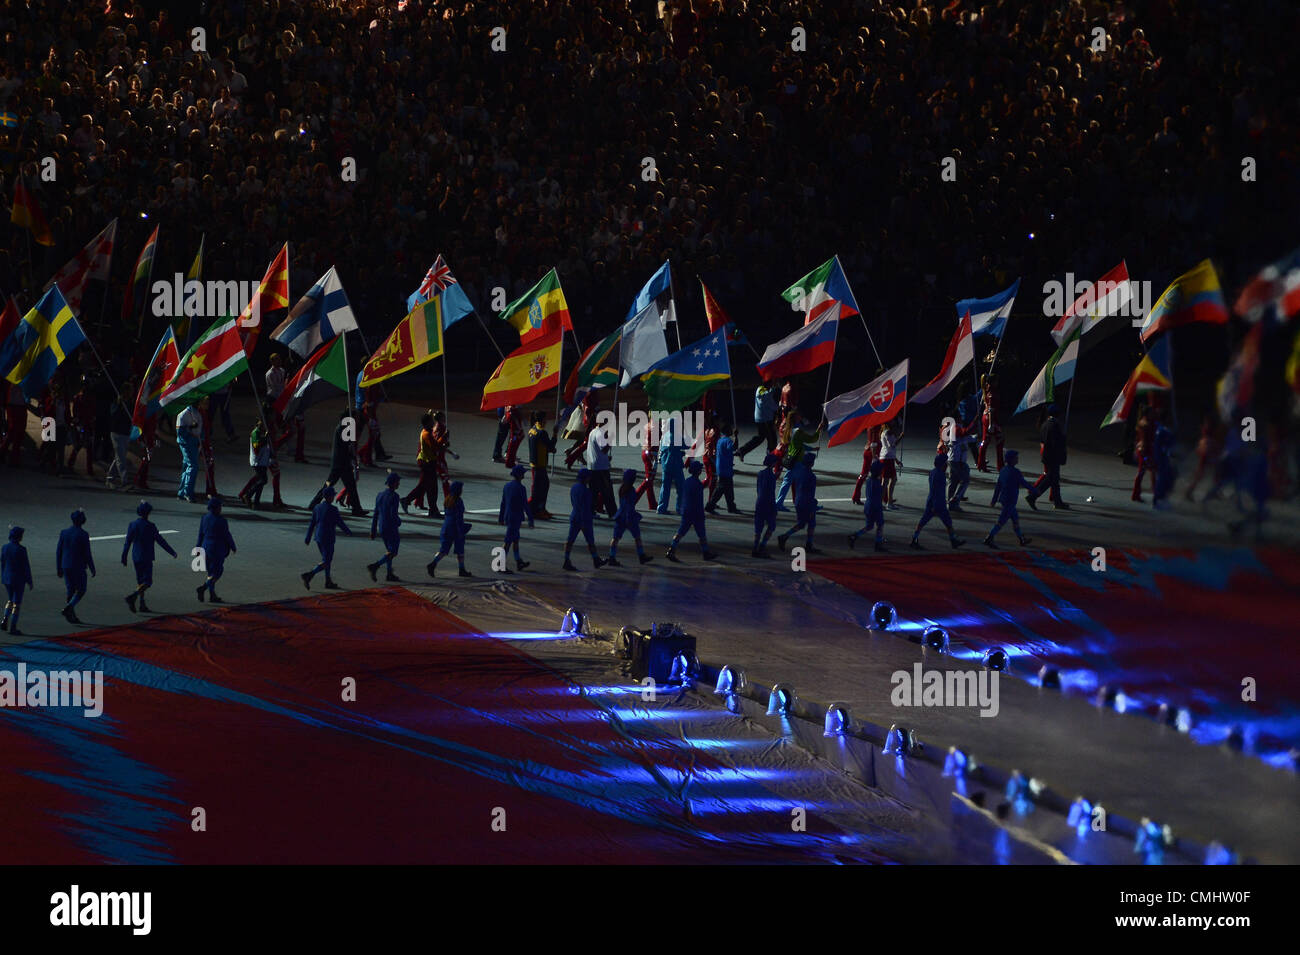 LONDON, ENGLAND - AUGUST 12, athletes and flag bearers enter the arena during the closing ceremony of the London - Stock Image